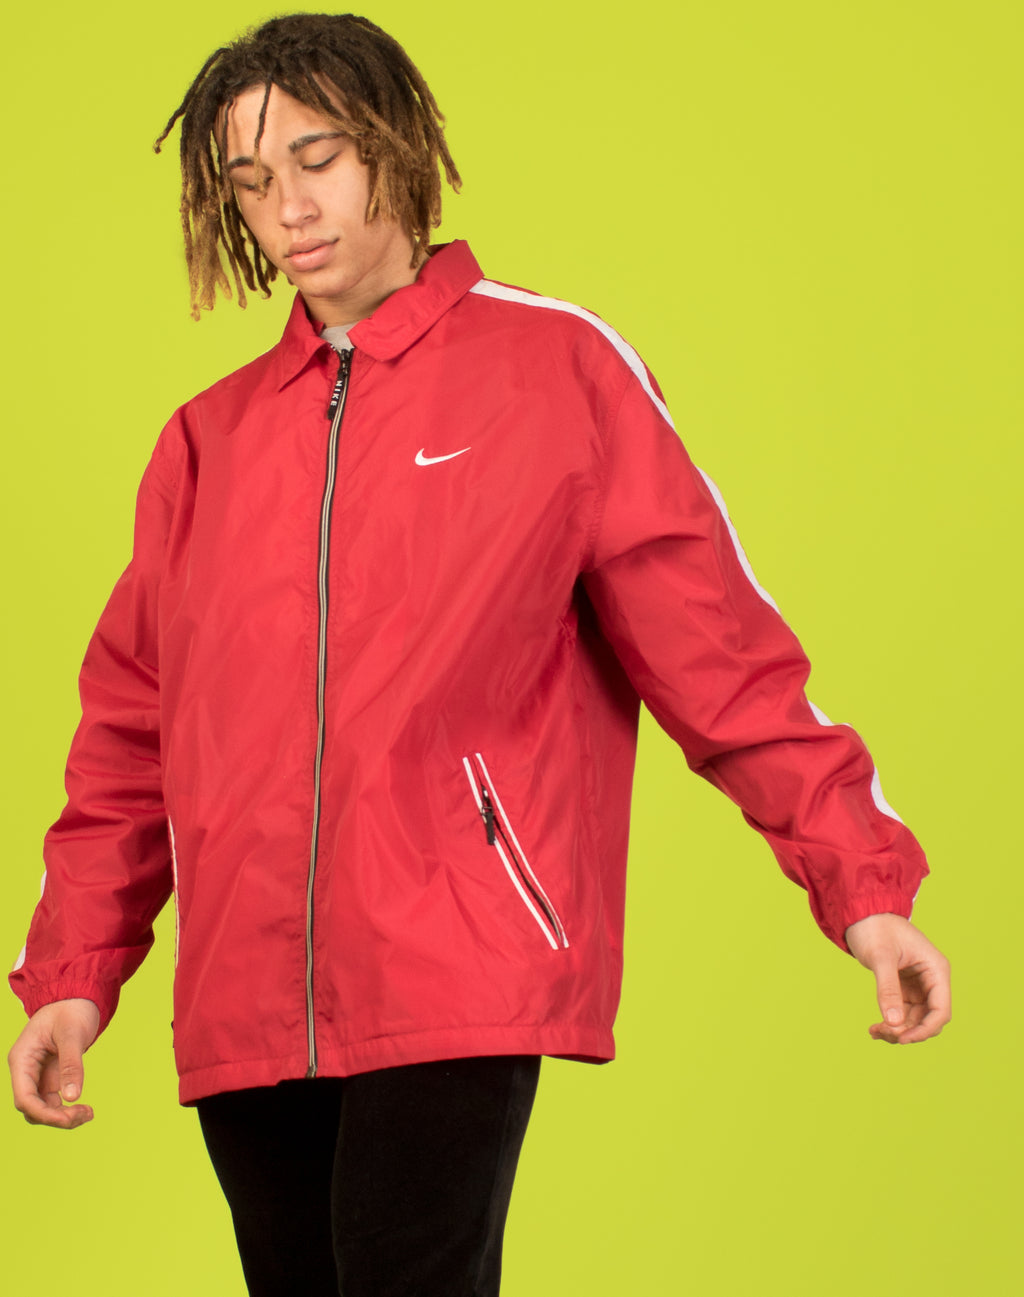 NIKE RED WATERPROOF JACKET